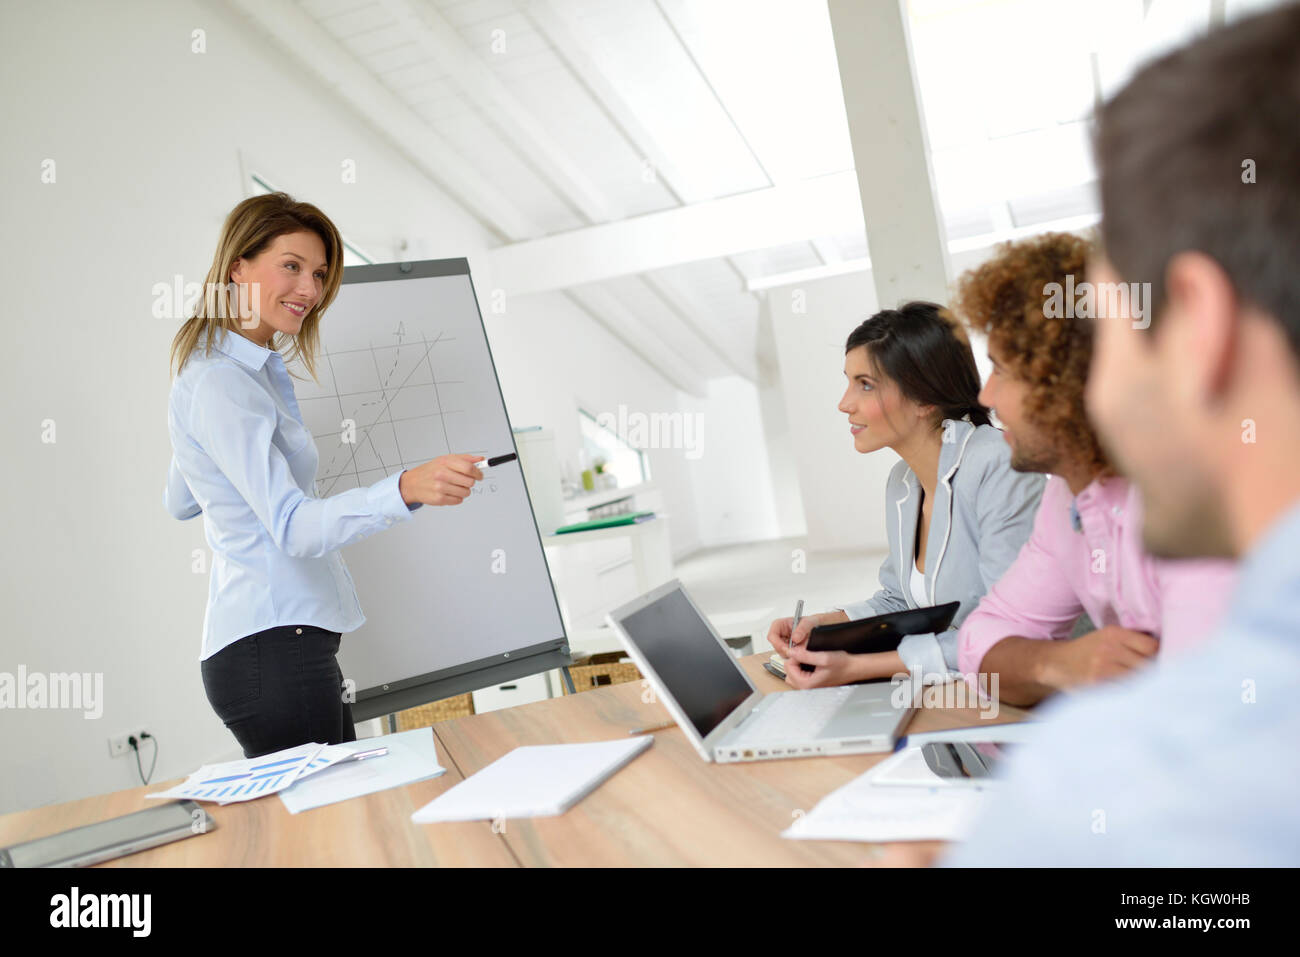 Manager doing business presentation on whiteboard - Stock Image